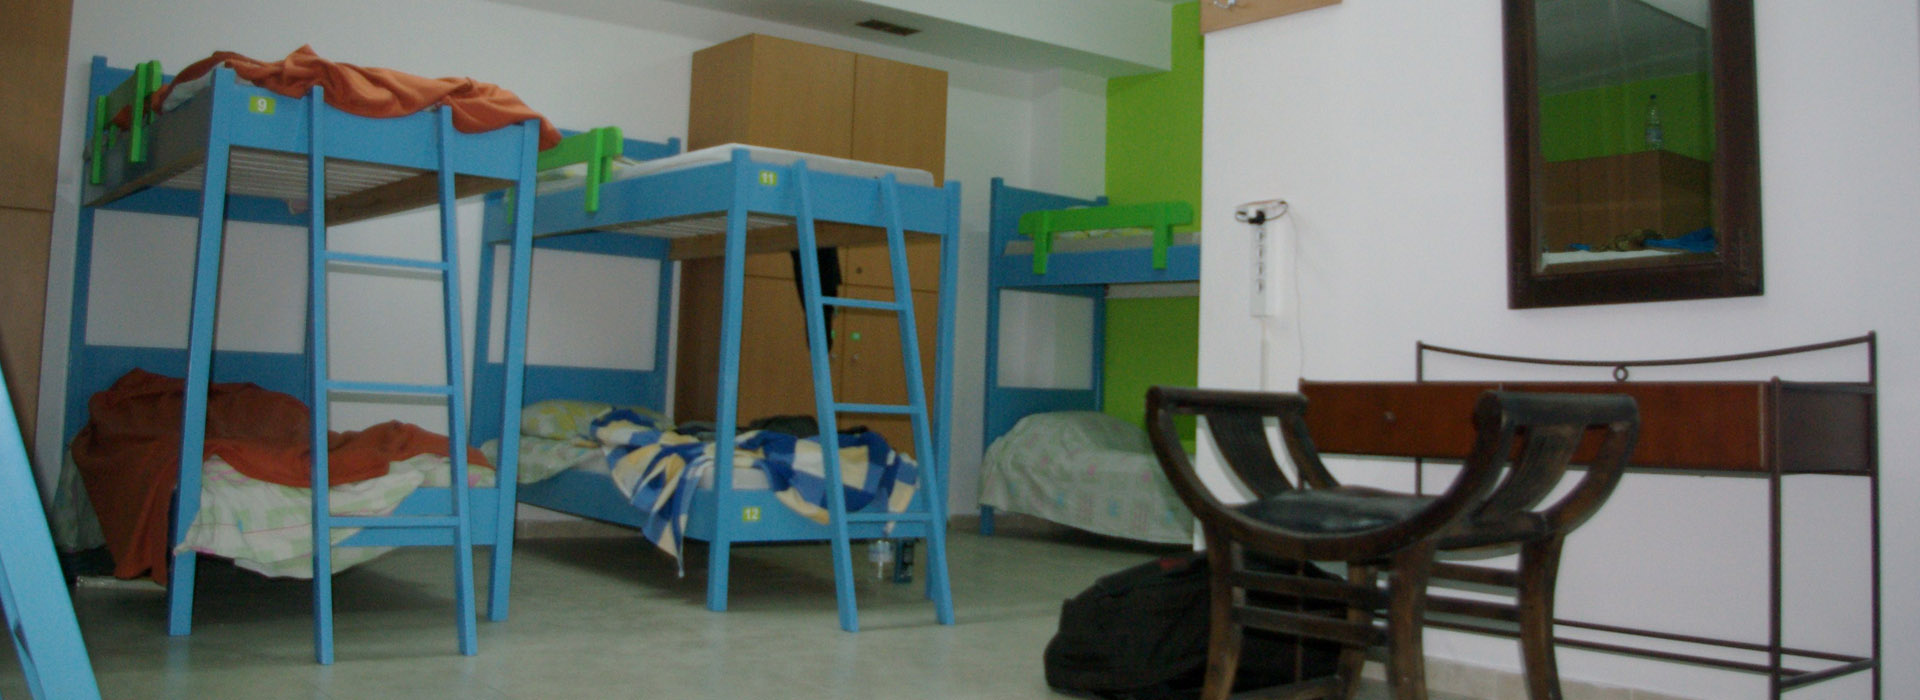 <small>SHARED ROOMS</small>WITH BUNK BEDS